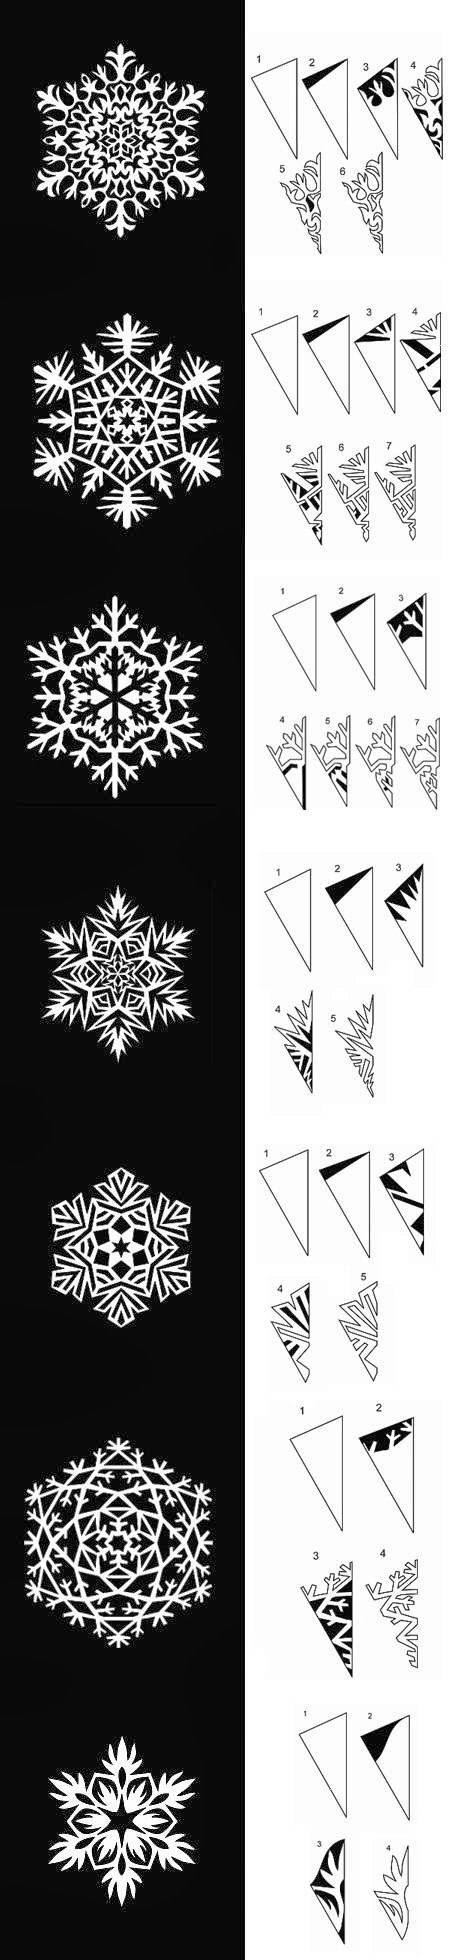 DIY : Paper Snowflakes Templates | DIY & Crafts Tutorials @Charlotte Willner Willner Swanson SNOWFLAKES!!!!!!!!: